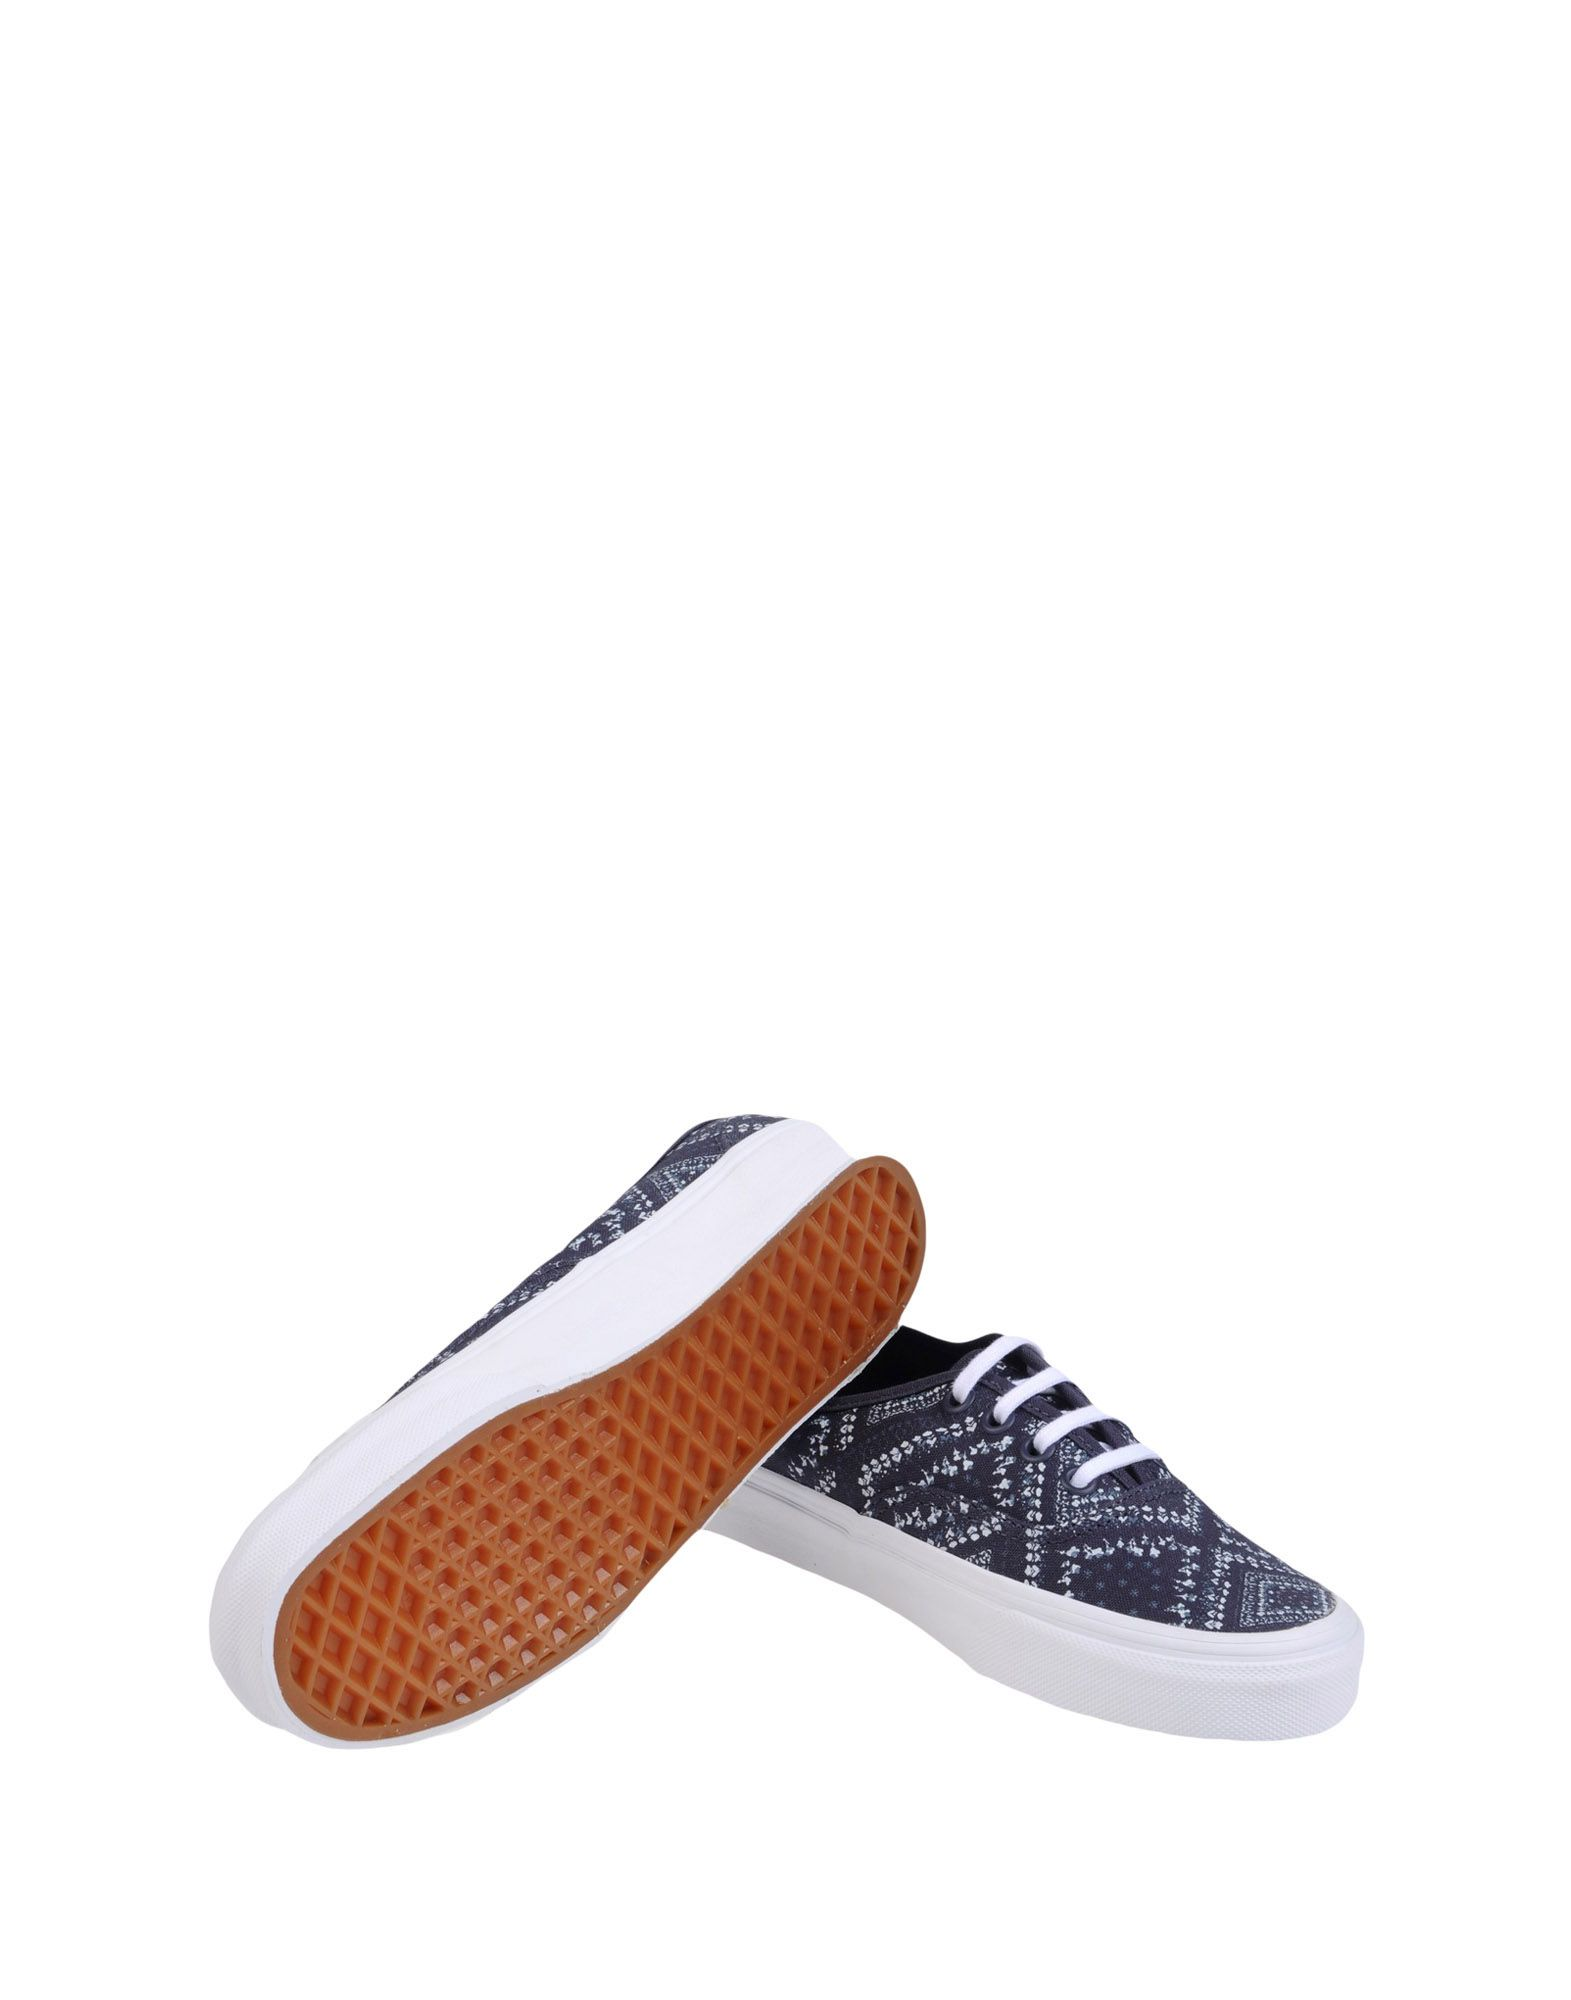 Sneakers Vans U Authentic Ditsy Bandana - Femme - Sneakers Vans sur